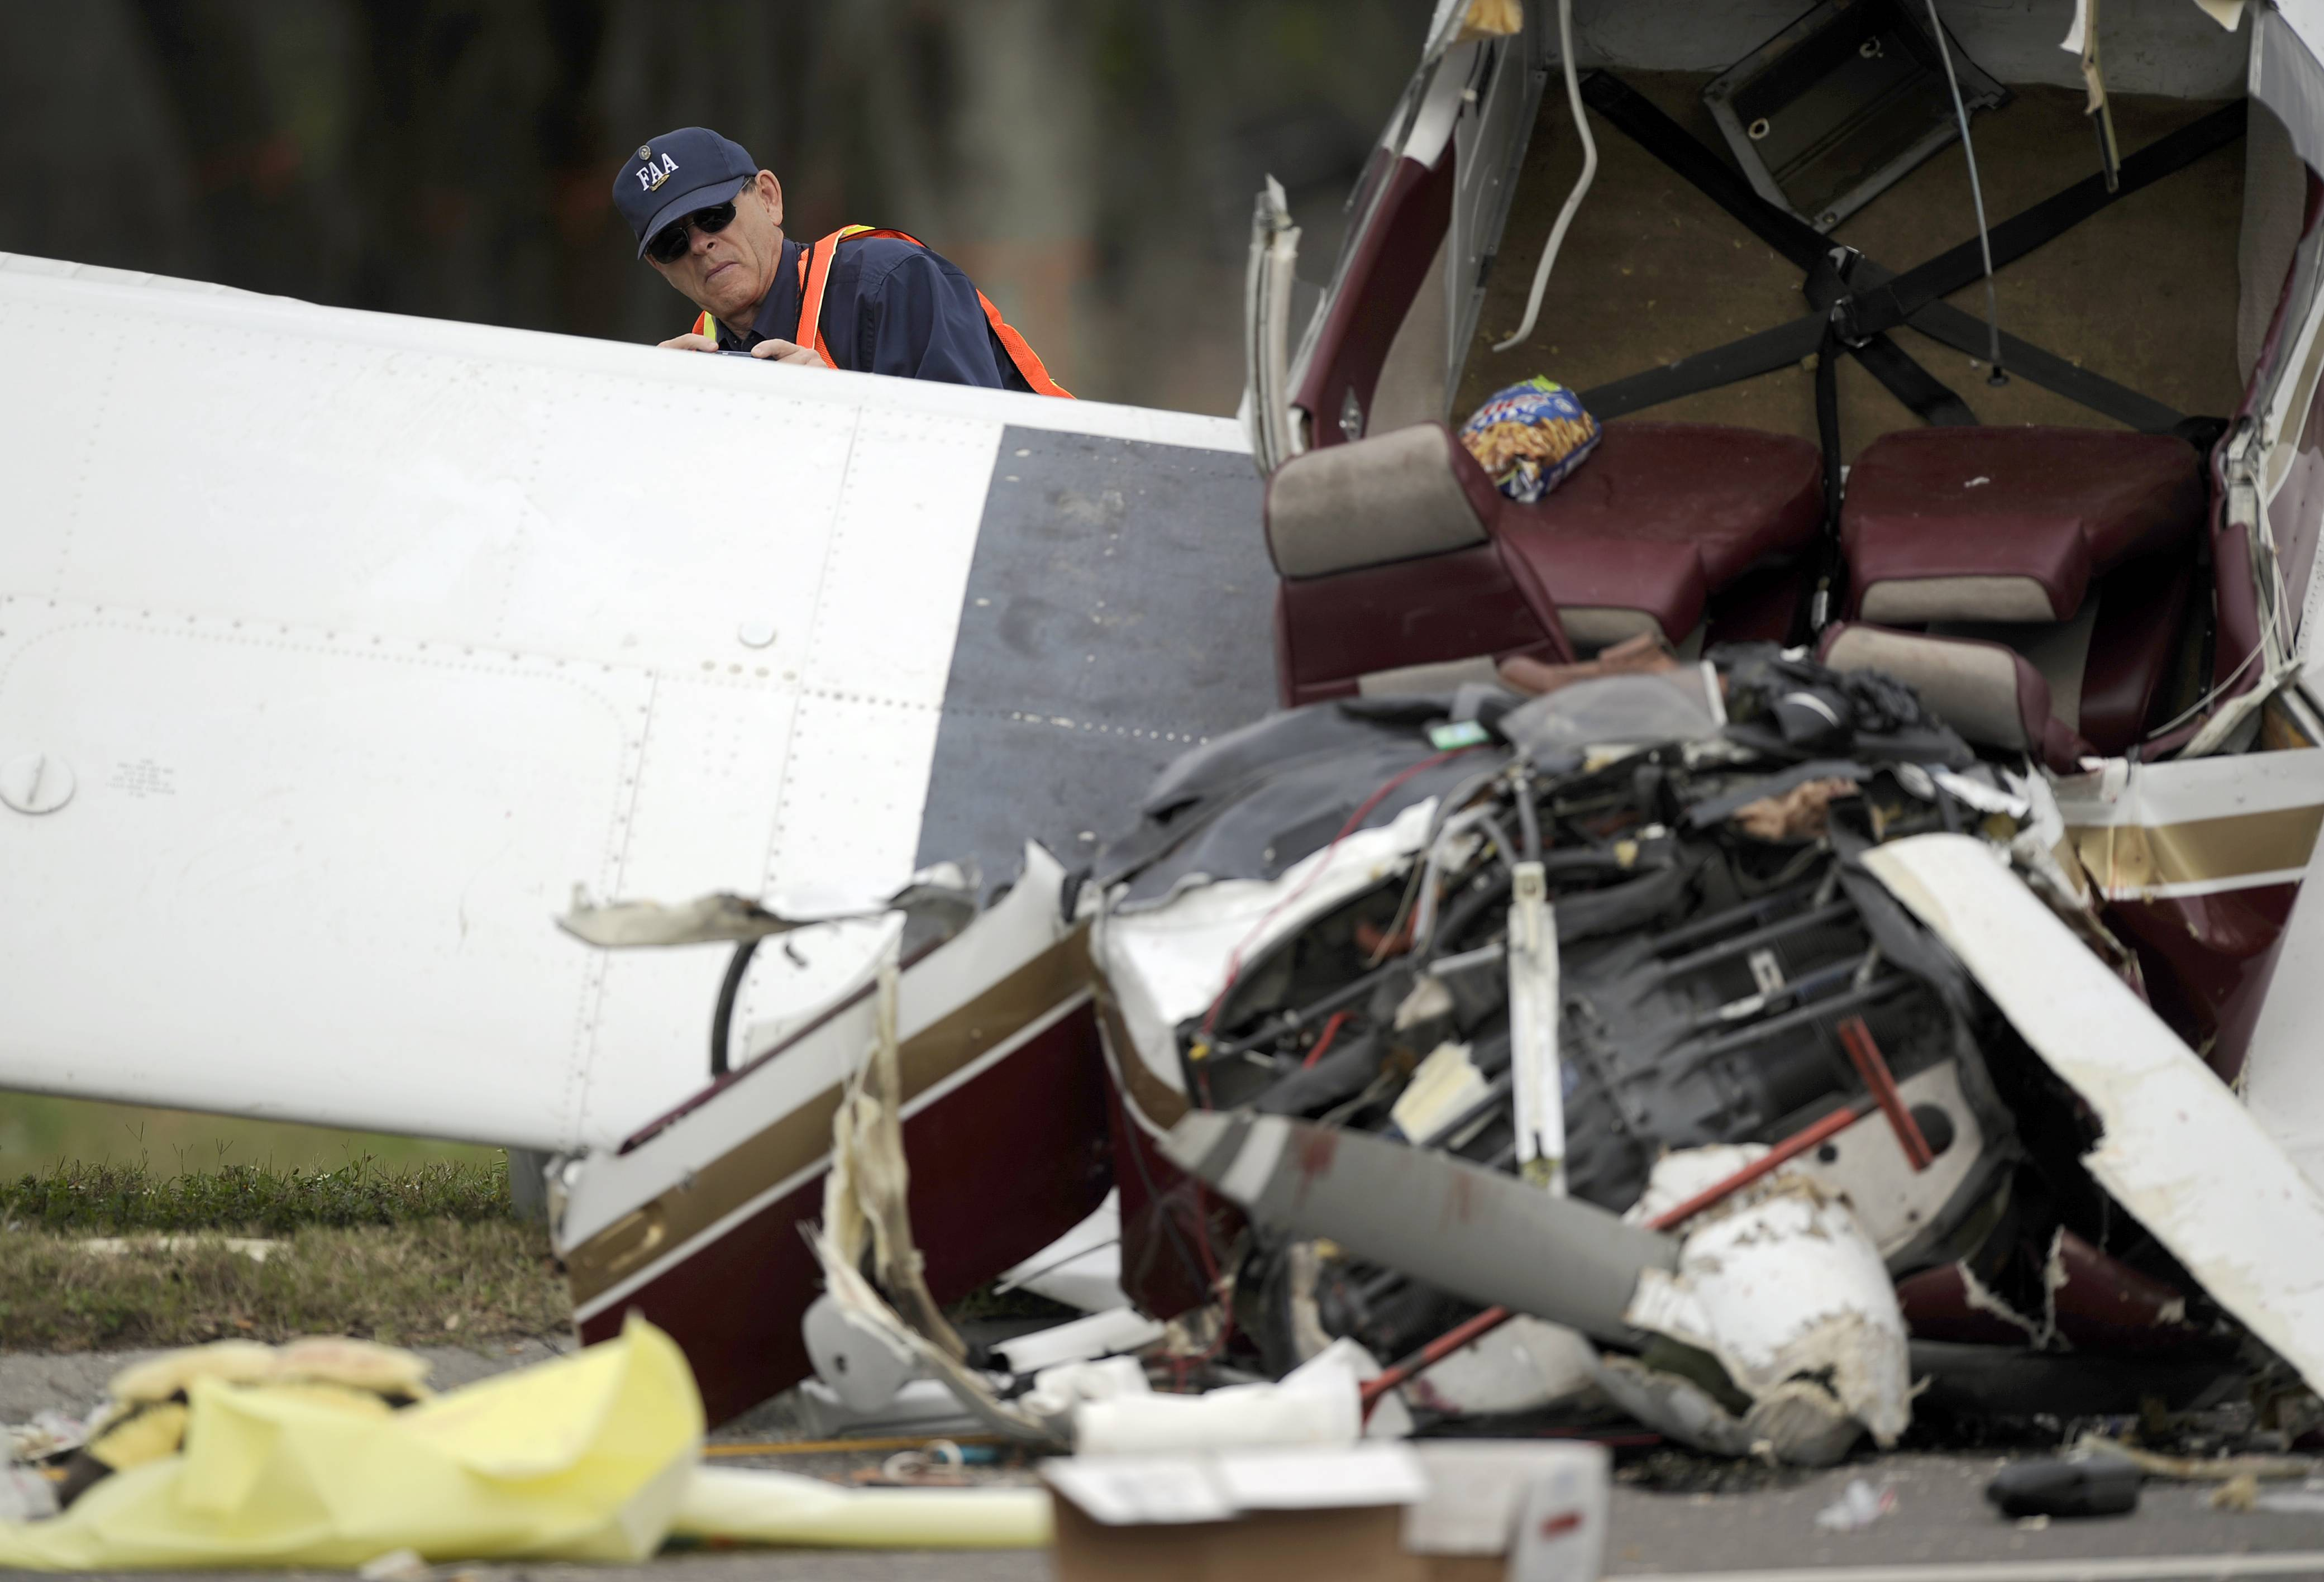 An investigator from the FAA takes photographs of a small passenger plane that crashed early Saturday in Clearwater, Fla. Authorities say the single-engine plane crashed at about 4 a.m. Saturday in Clearwater.